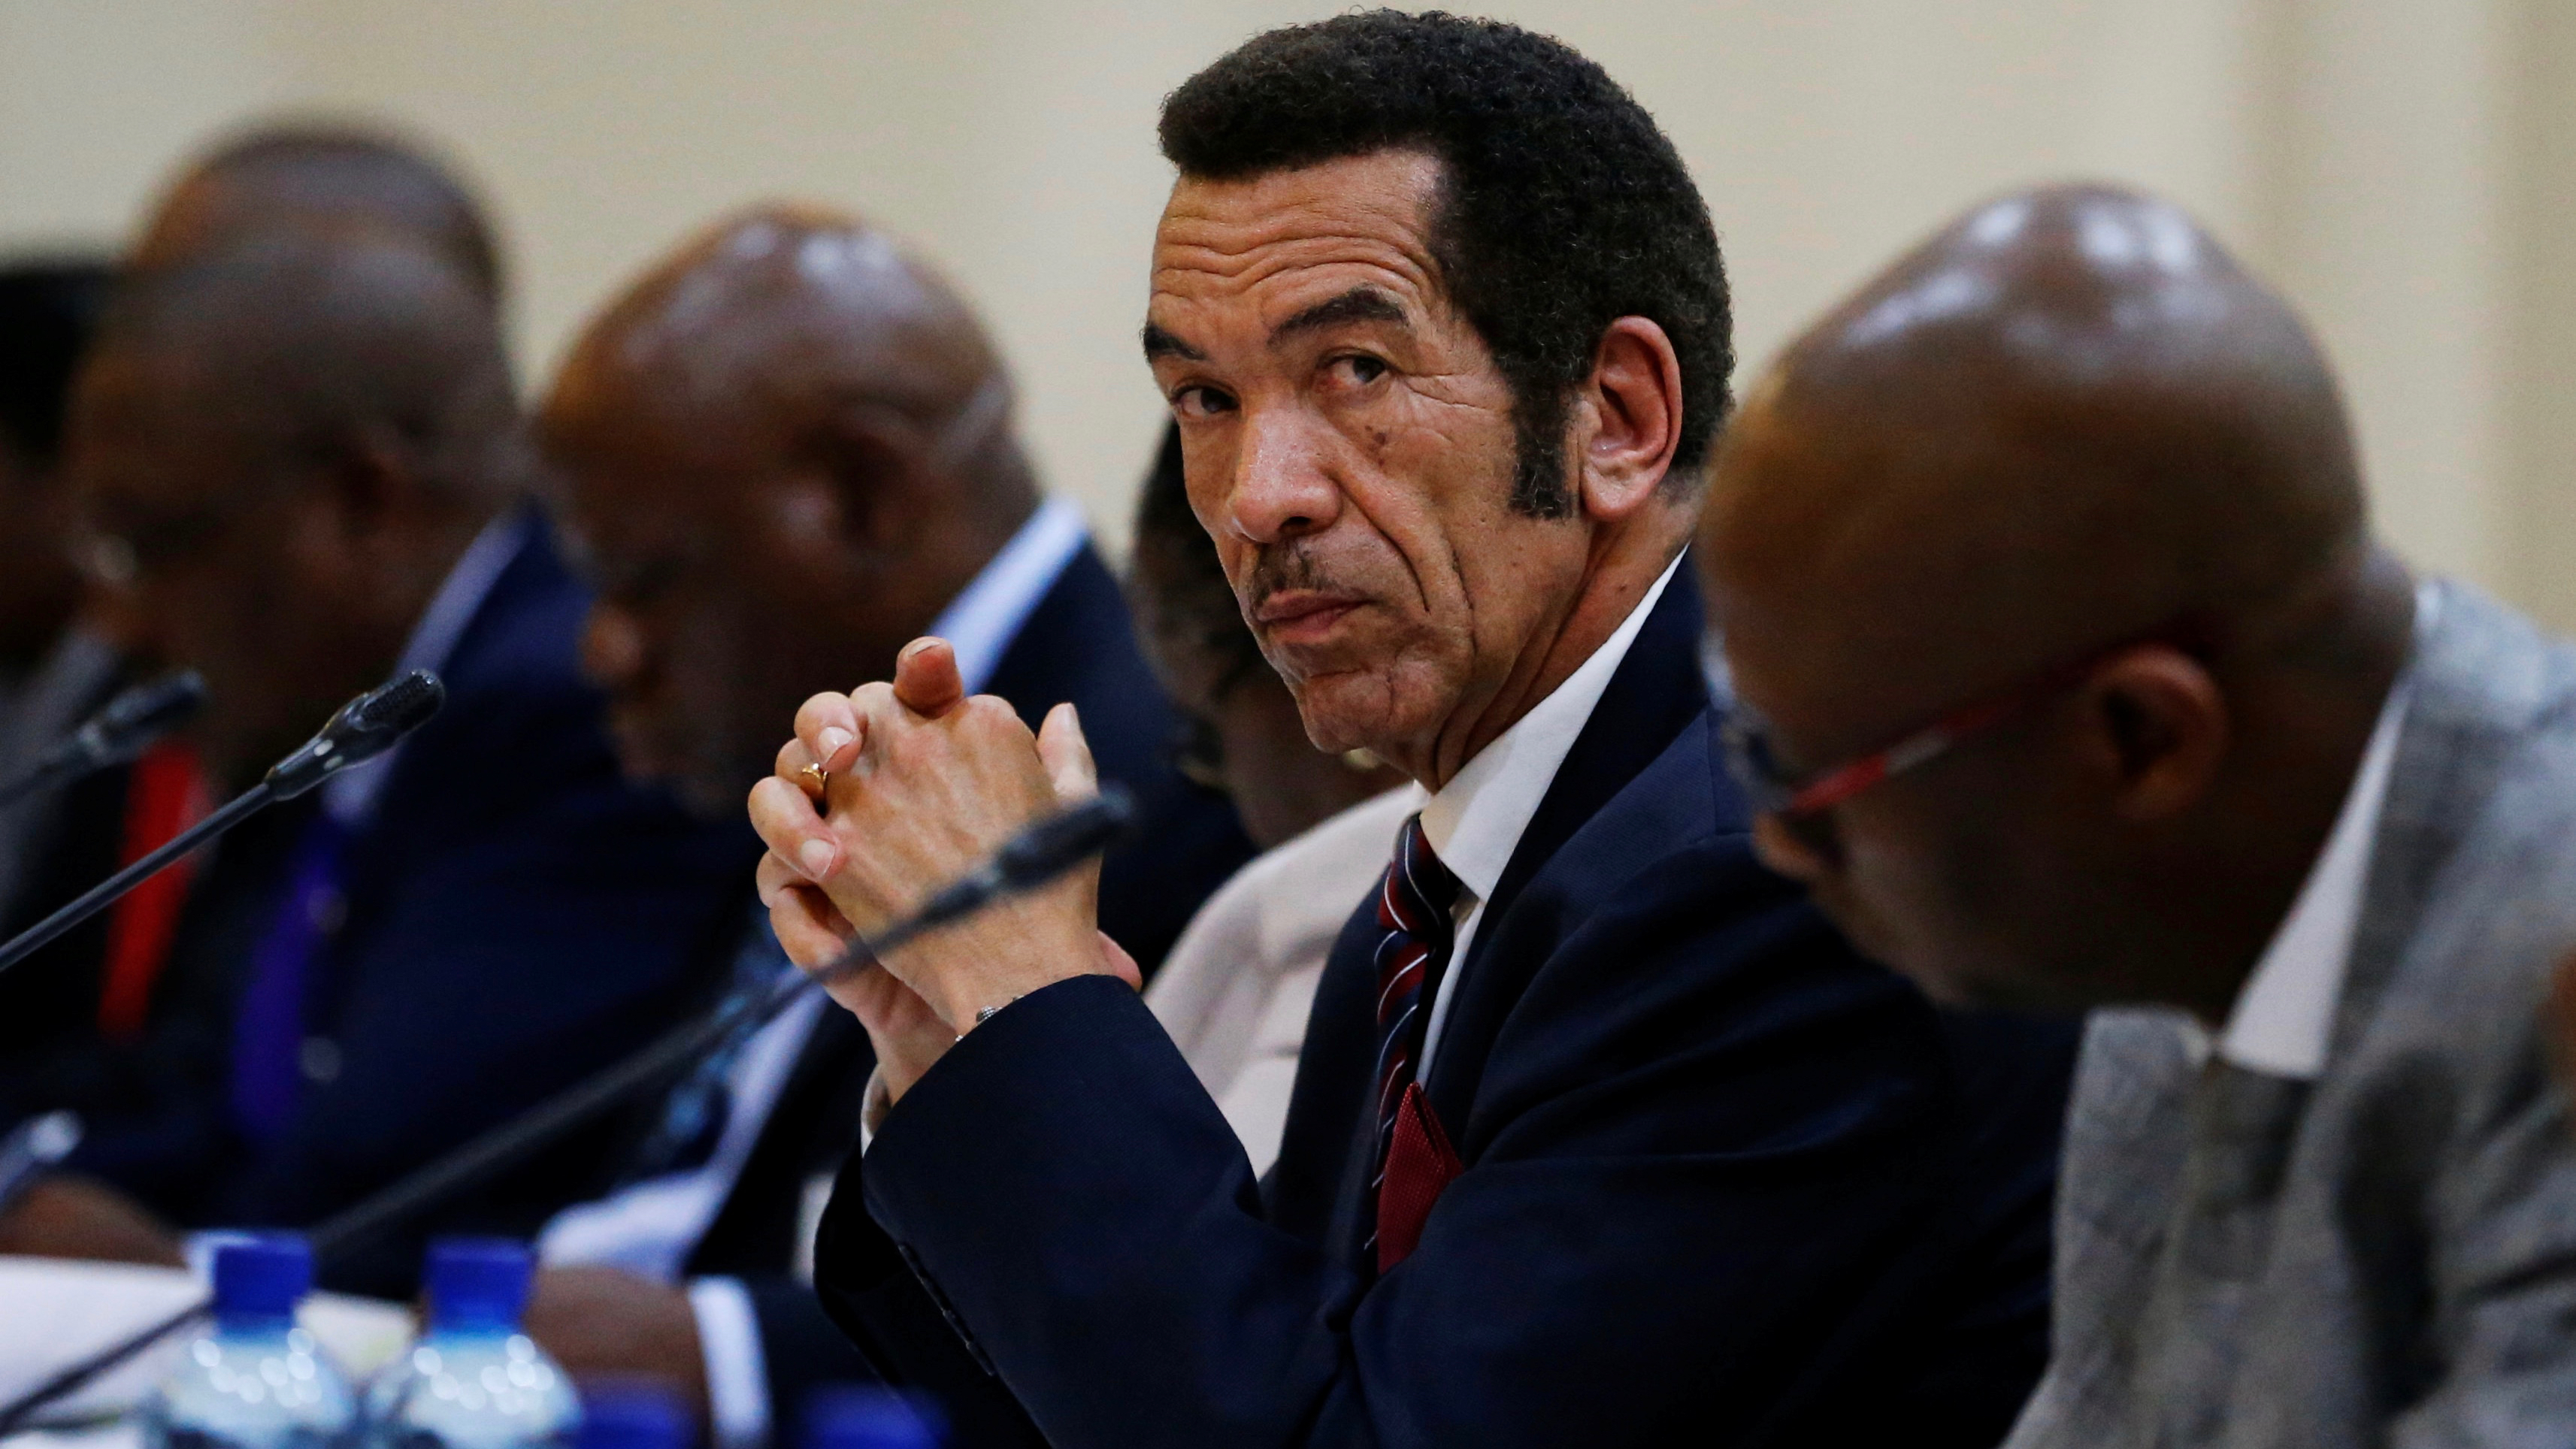 Botswana President Ian Khama looks on during the Botswana-South Africa Bi-National Commission (BNC) in Pretoria, South Africa, November 11, 2016. REUTERS/Siphiwe Sibeko - RTX2T64N